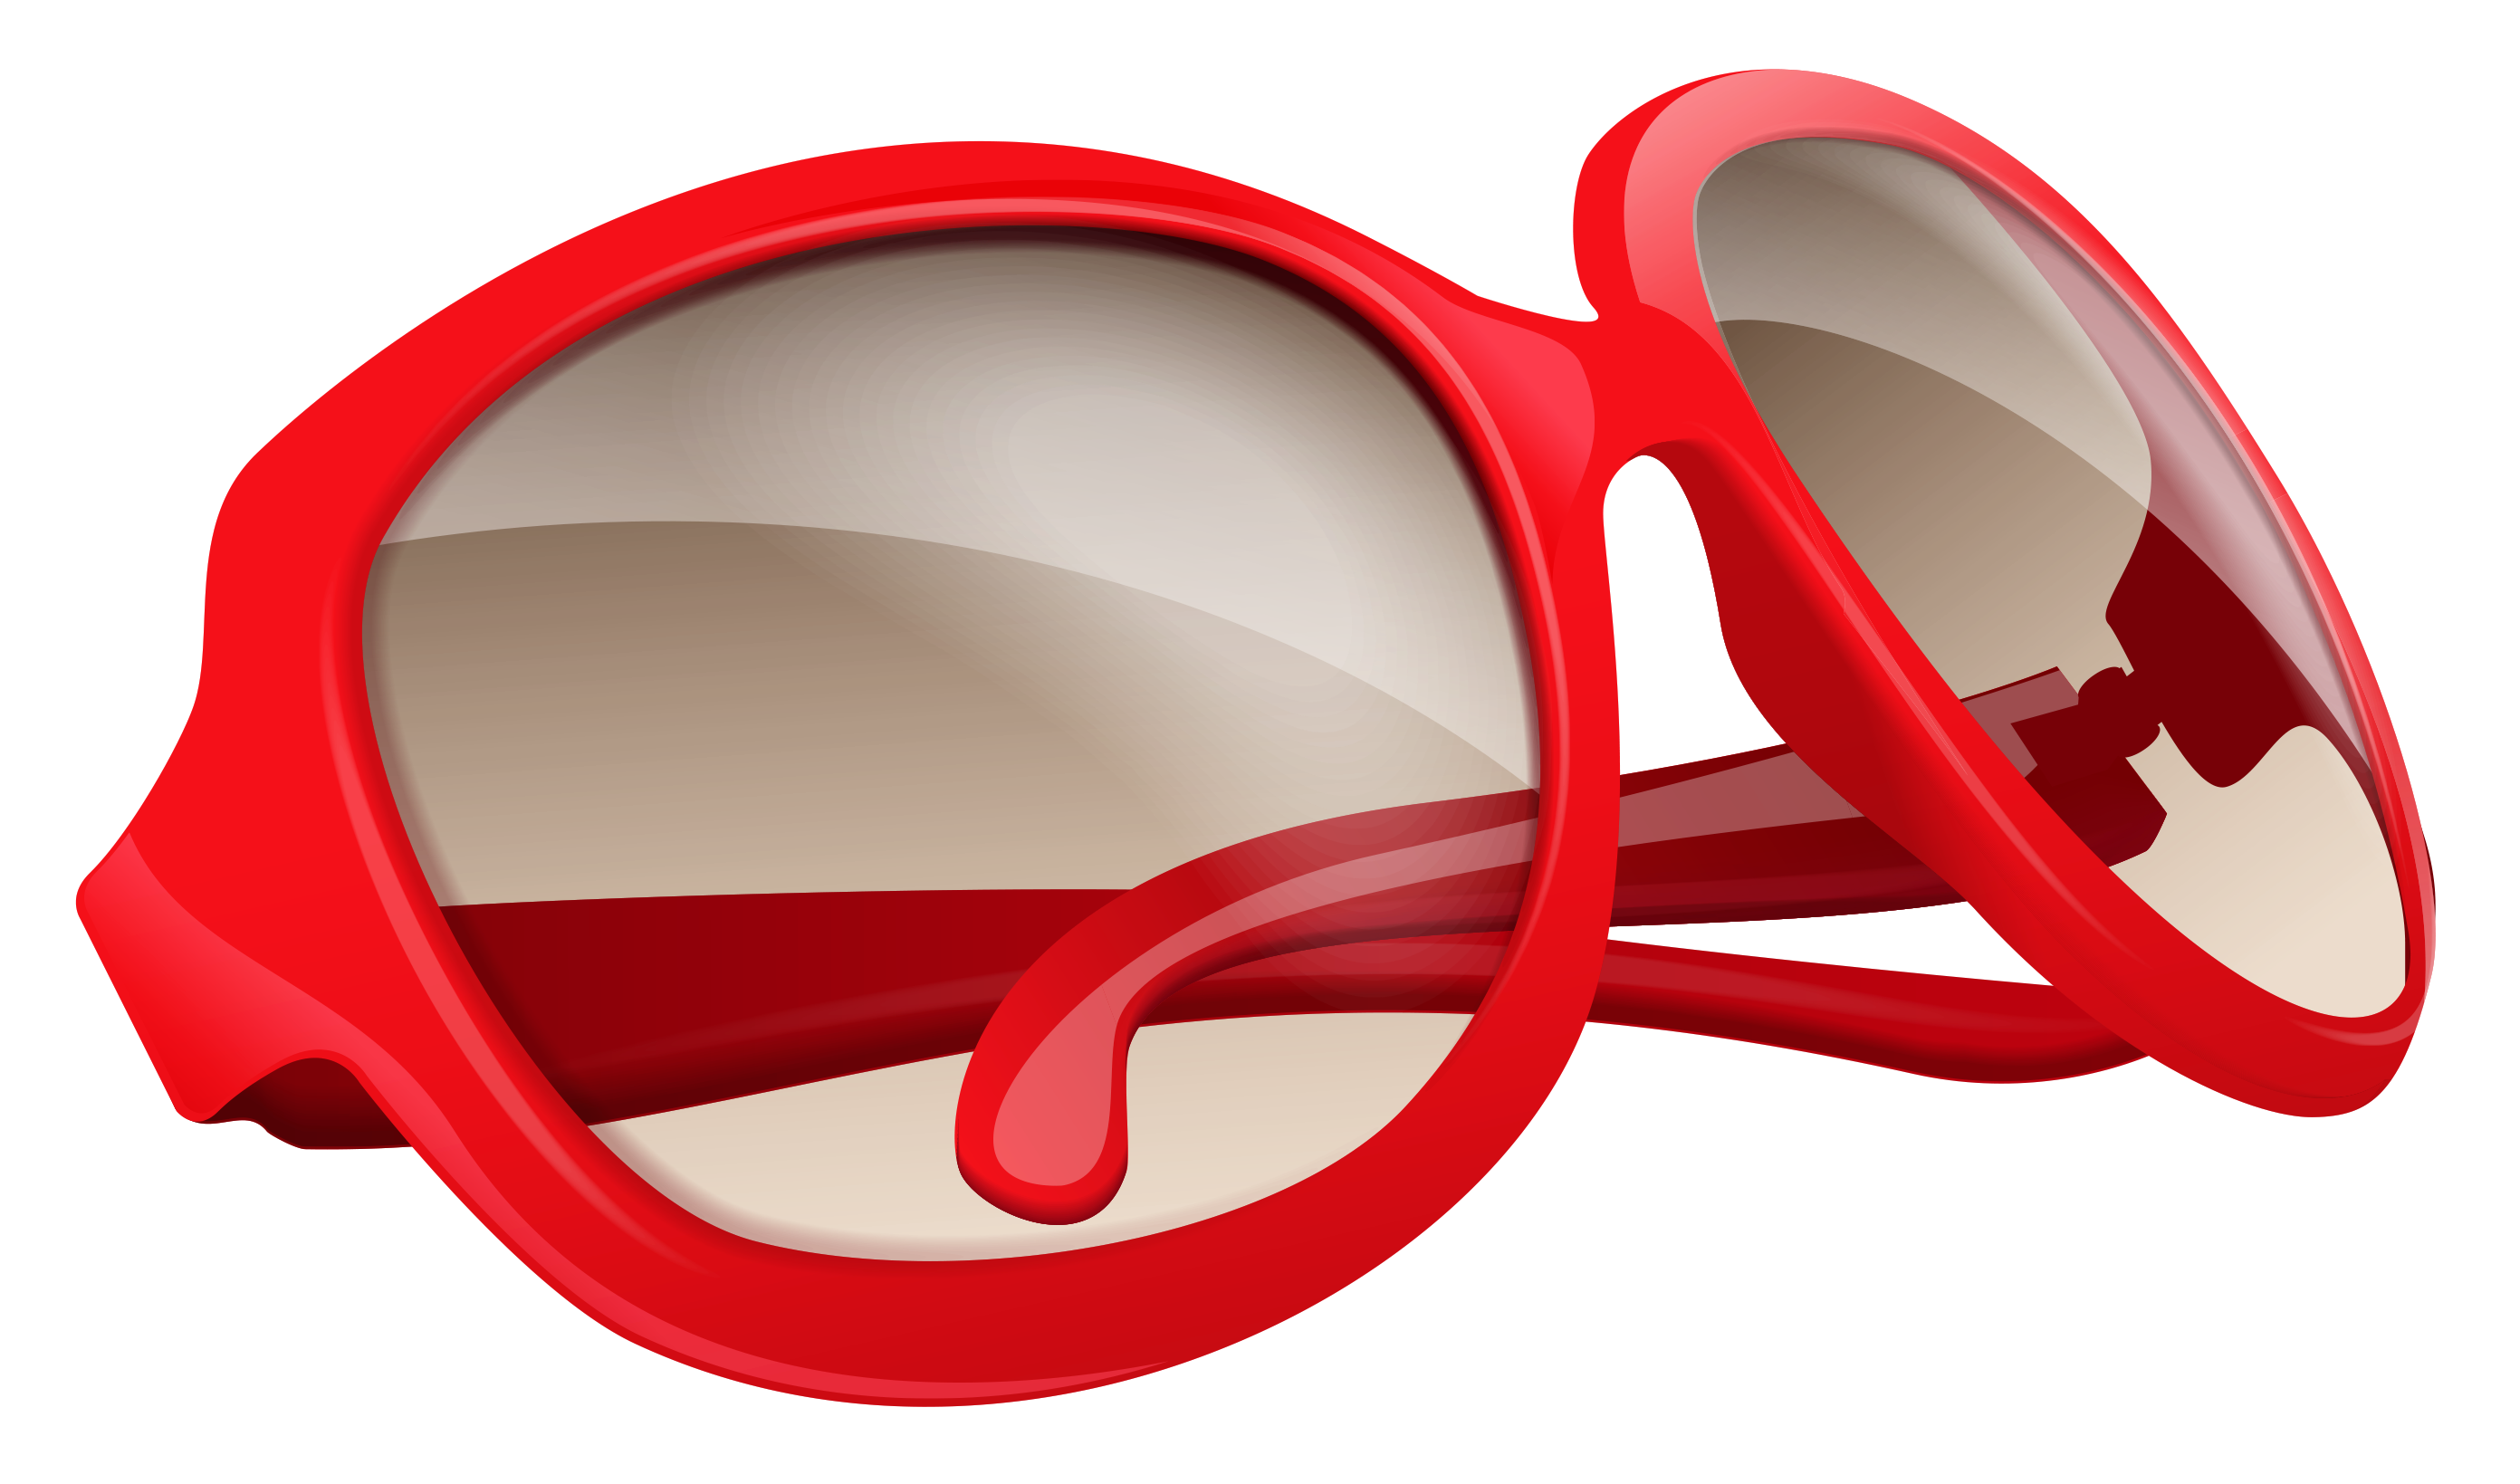 Red Sunglasses Image